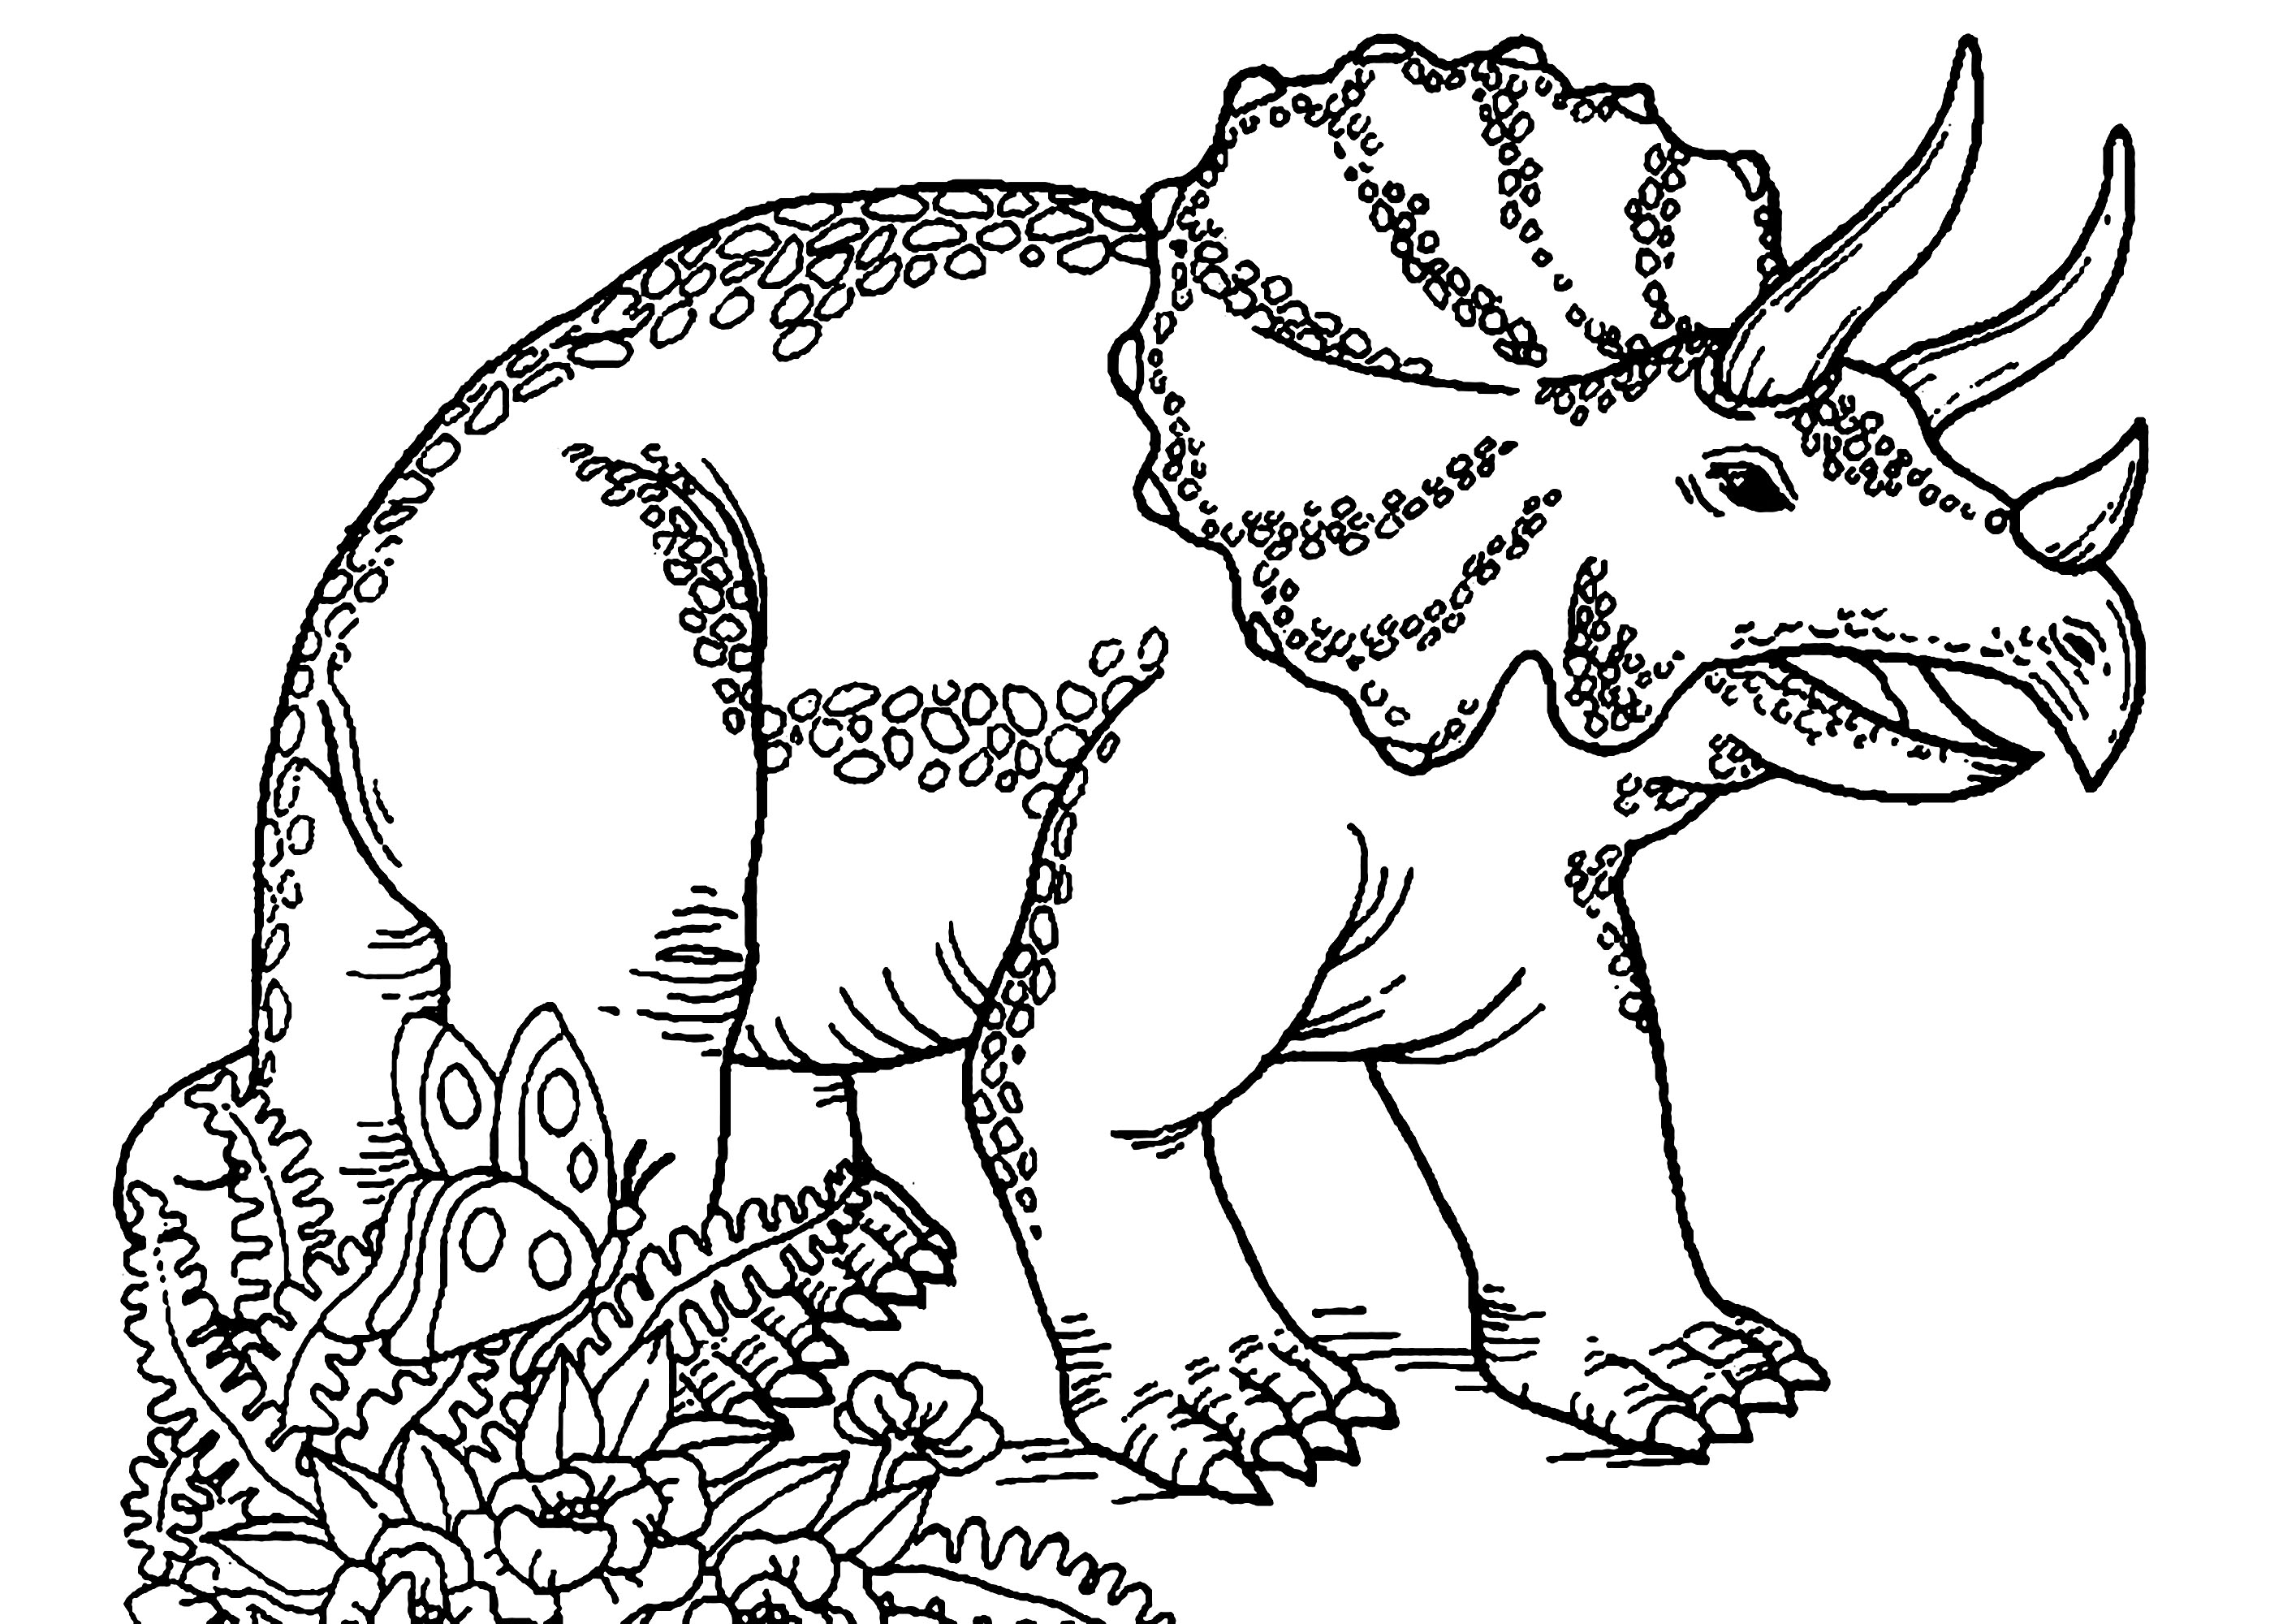 dinosaur pictures to colour in coloring pages dinosaur free printable coloring pages dinosaur to in pictures colour